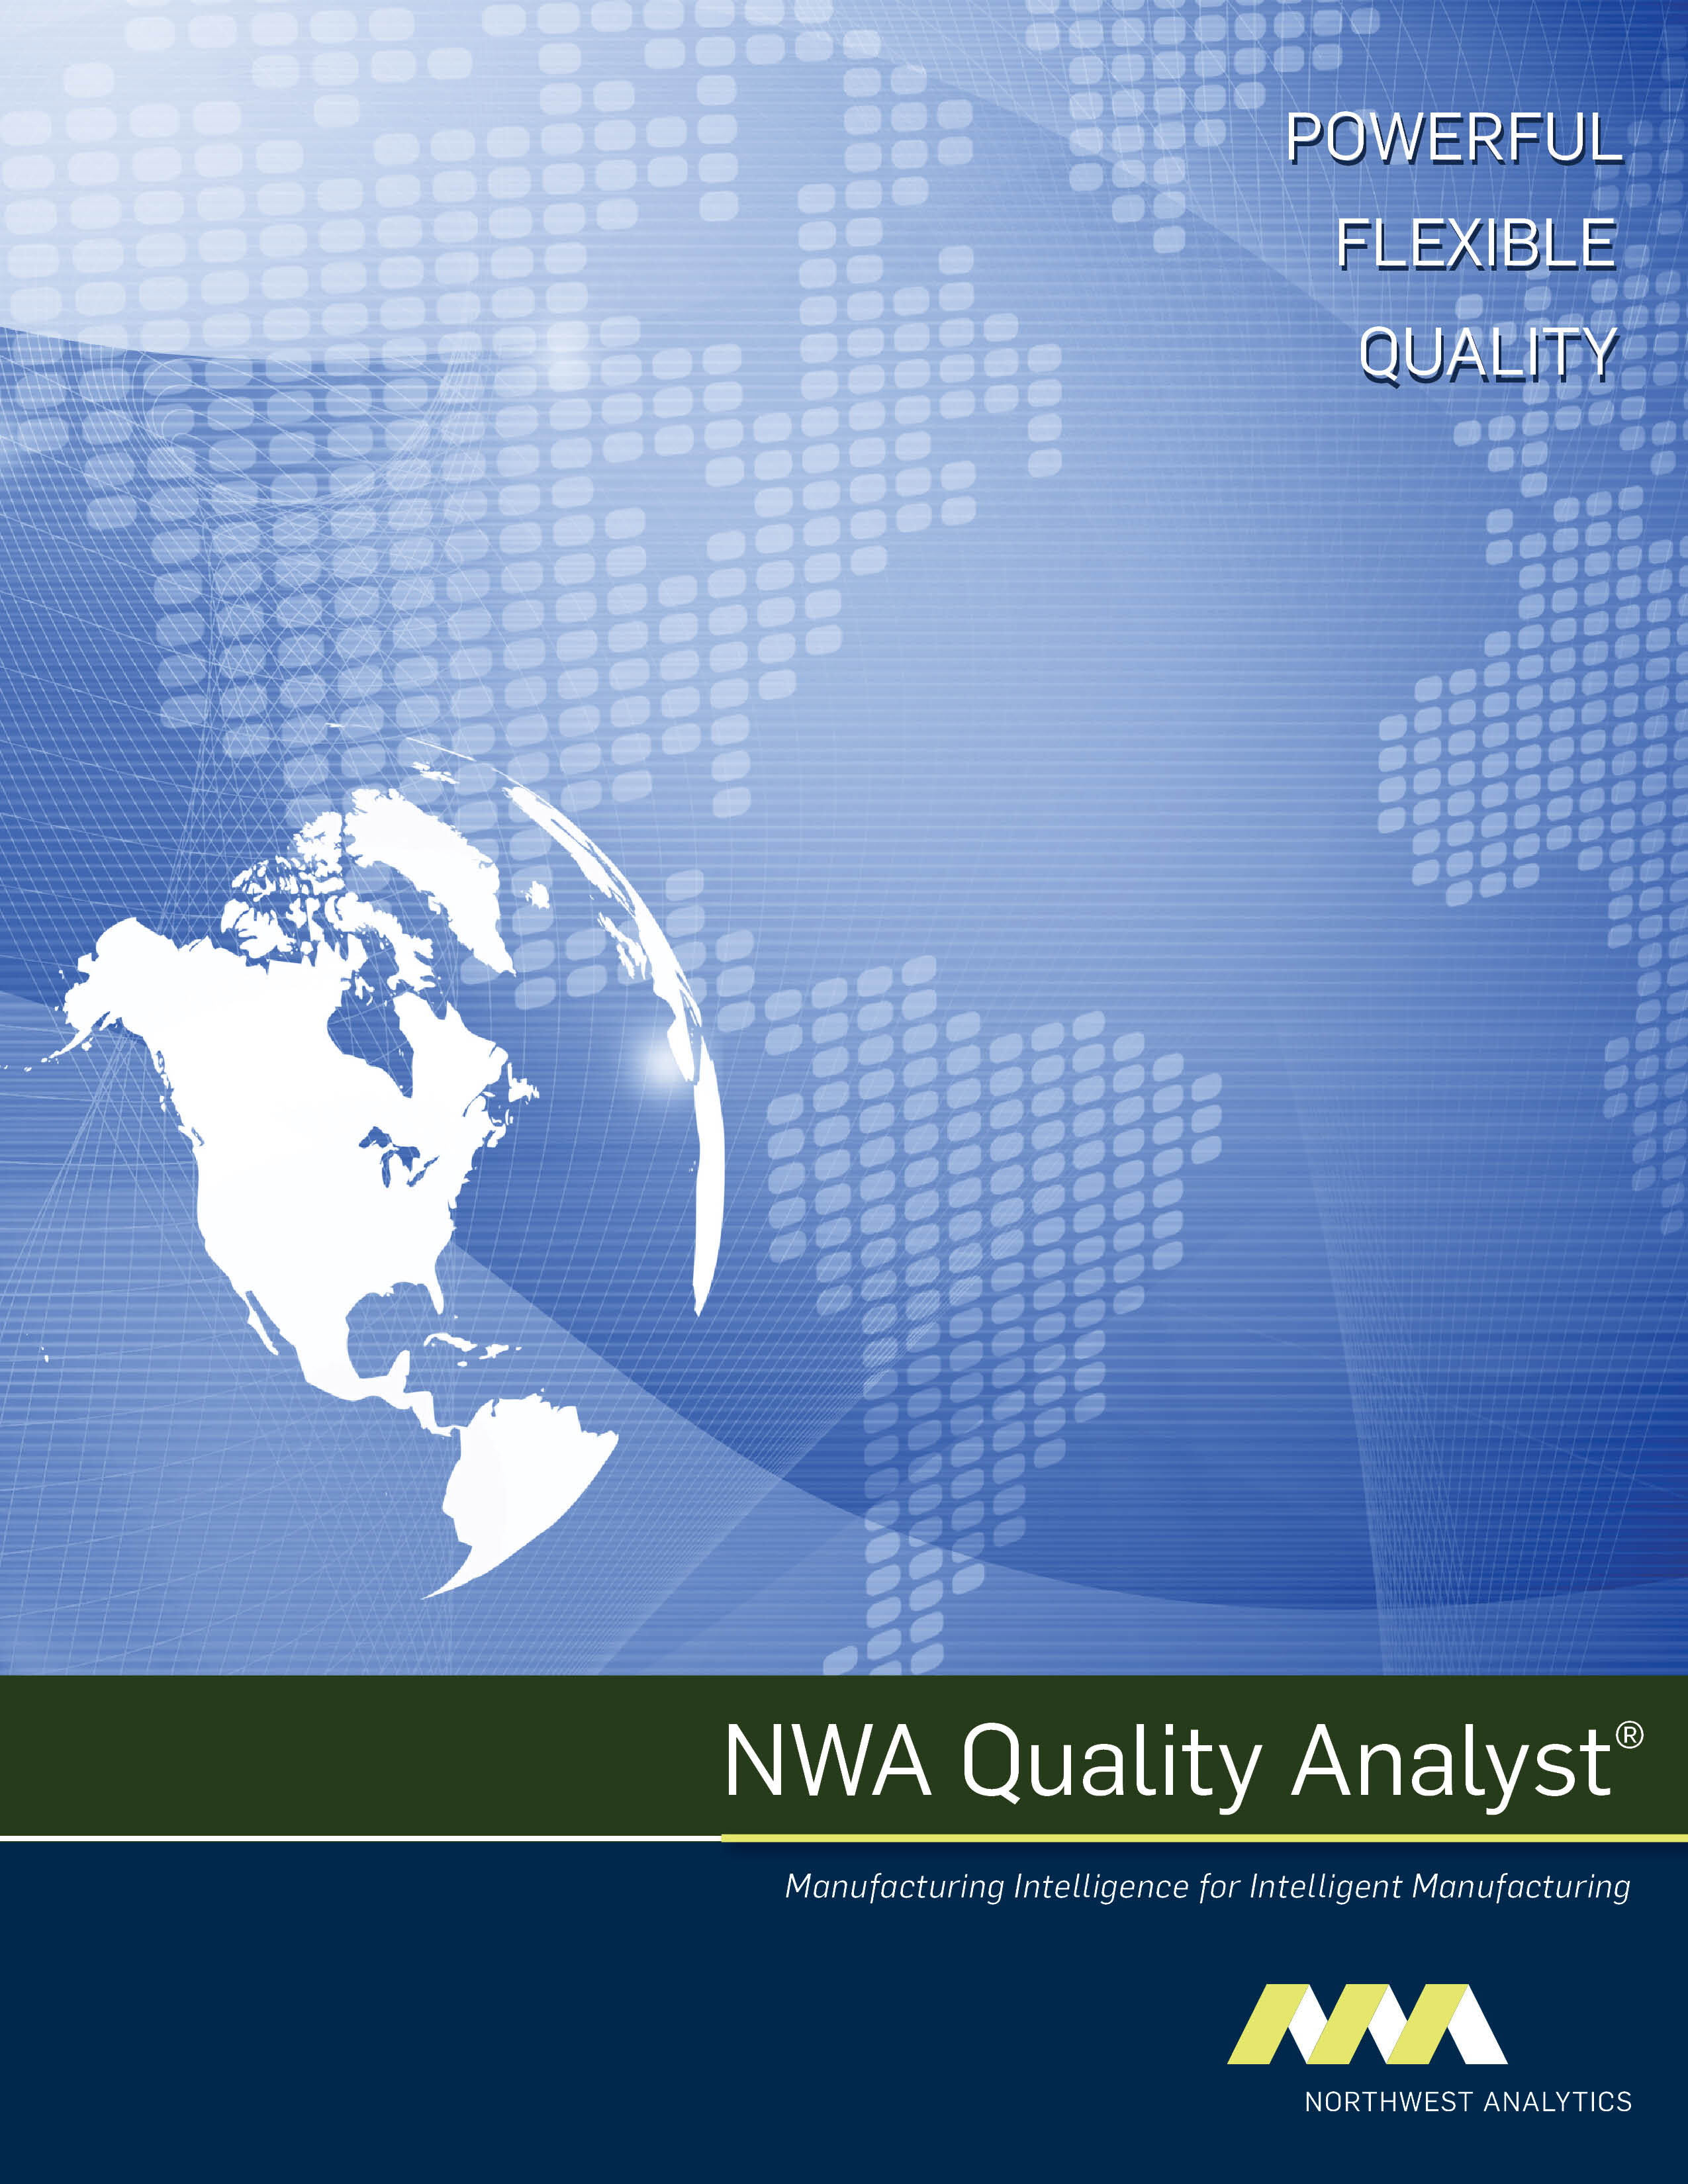 NWA+Quality+Analyst+Demo